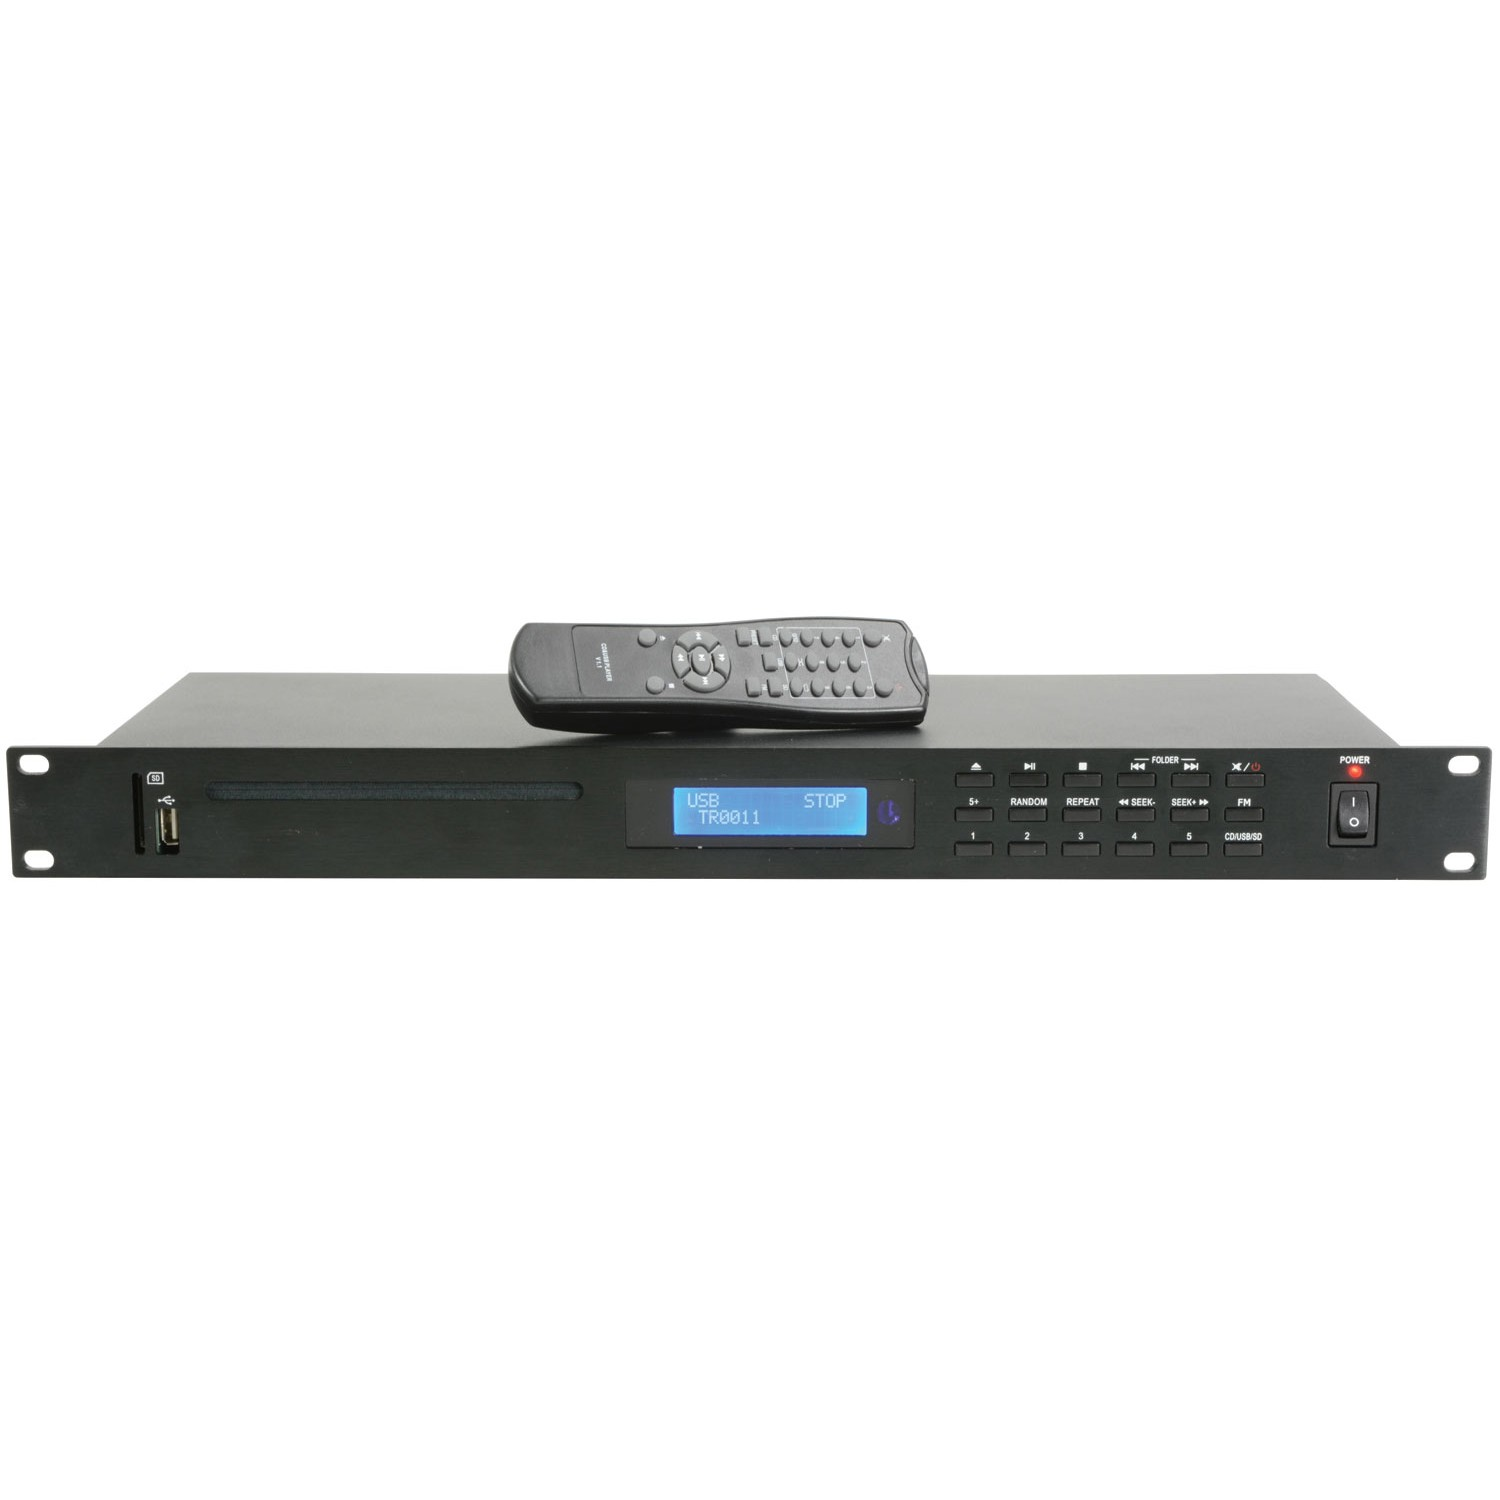 AD-400 is 1U rack mountable CD player with USB and SD card inputs and a built in FM tuner